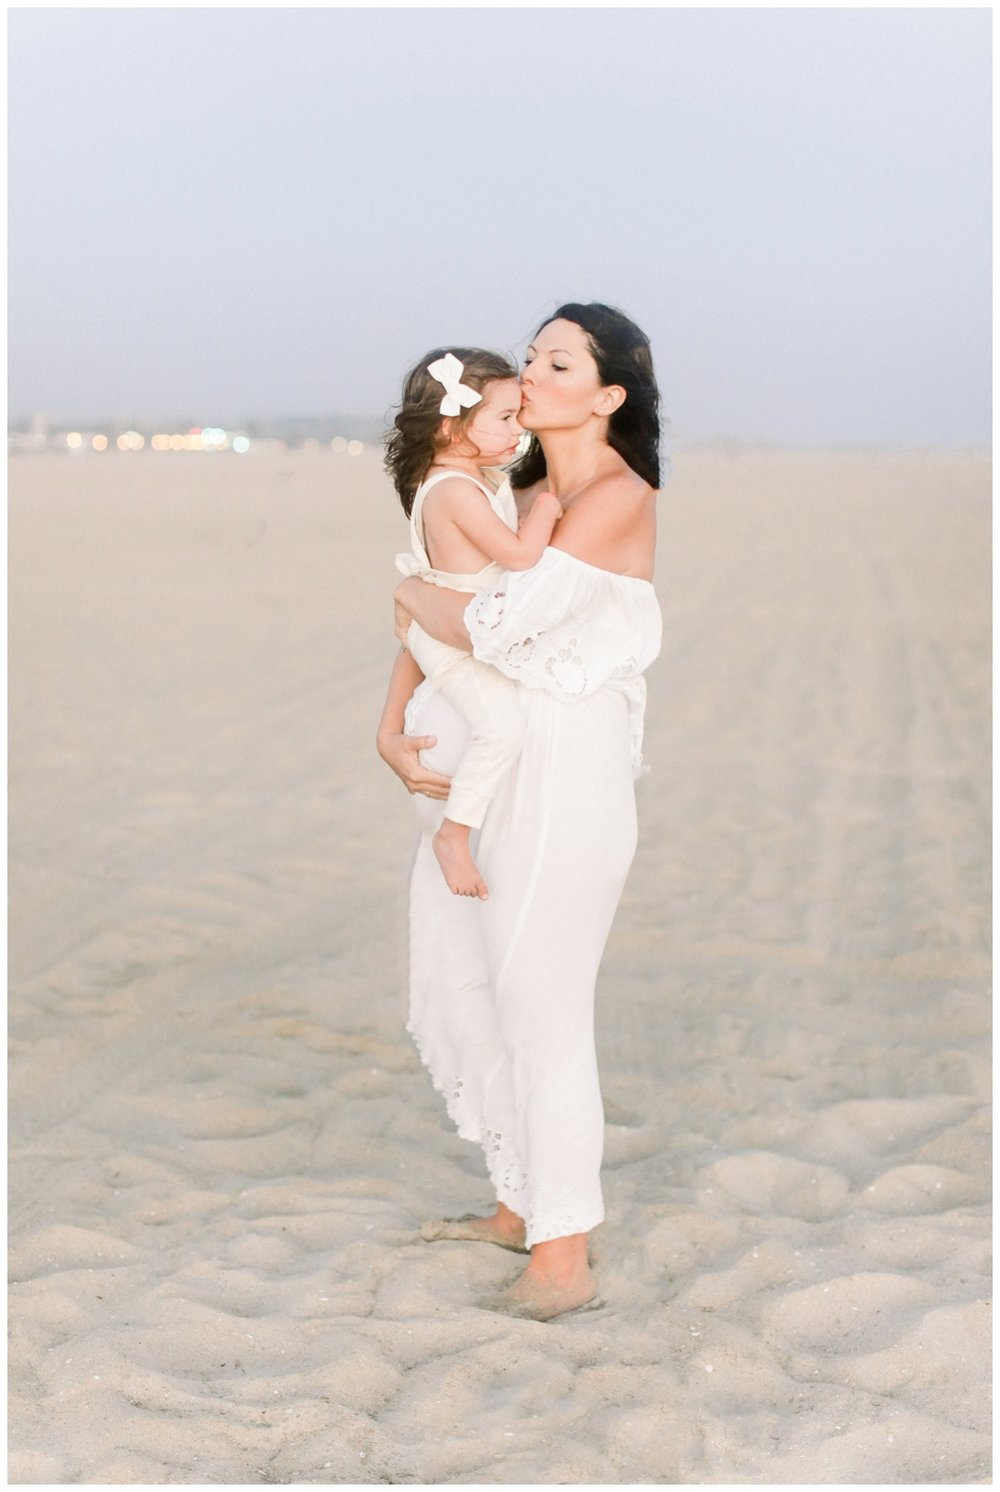 Newport_Beach_Maternity_Photographer_Newport_Beach_Newborn_Photography_Orange_County_Newborn_Photographer_Cori_Kleckner_Photography_Orange_County_in-home_Photography__2149.jpg